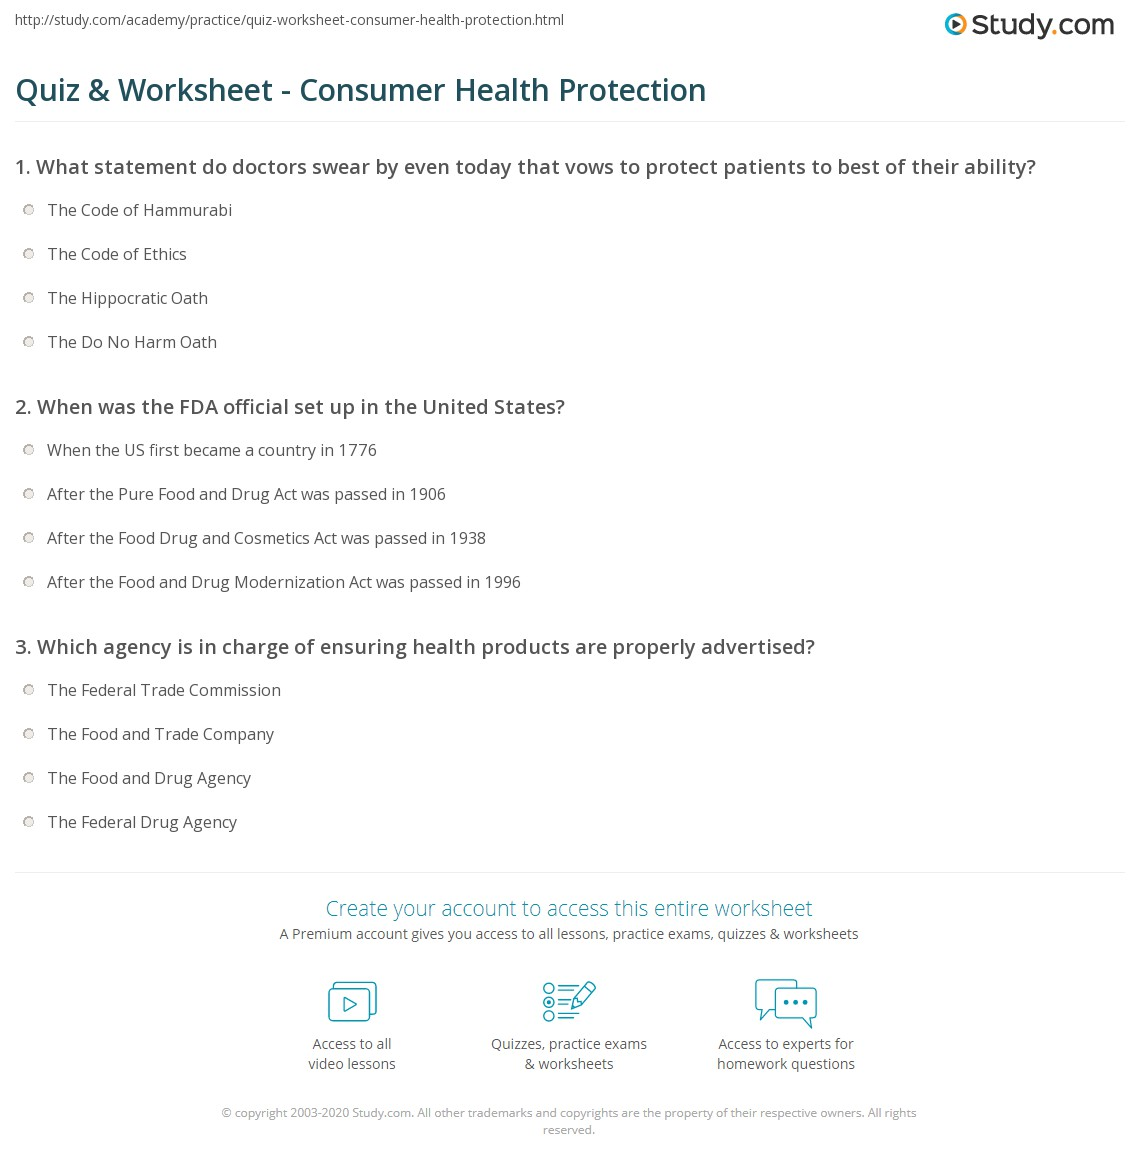 quiz worksheet consumer health protection study com already registered login here for access